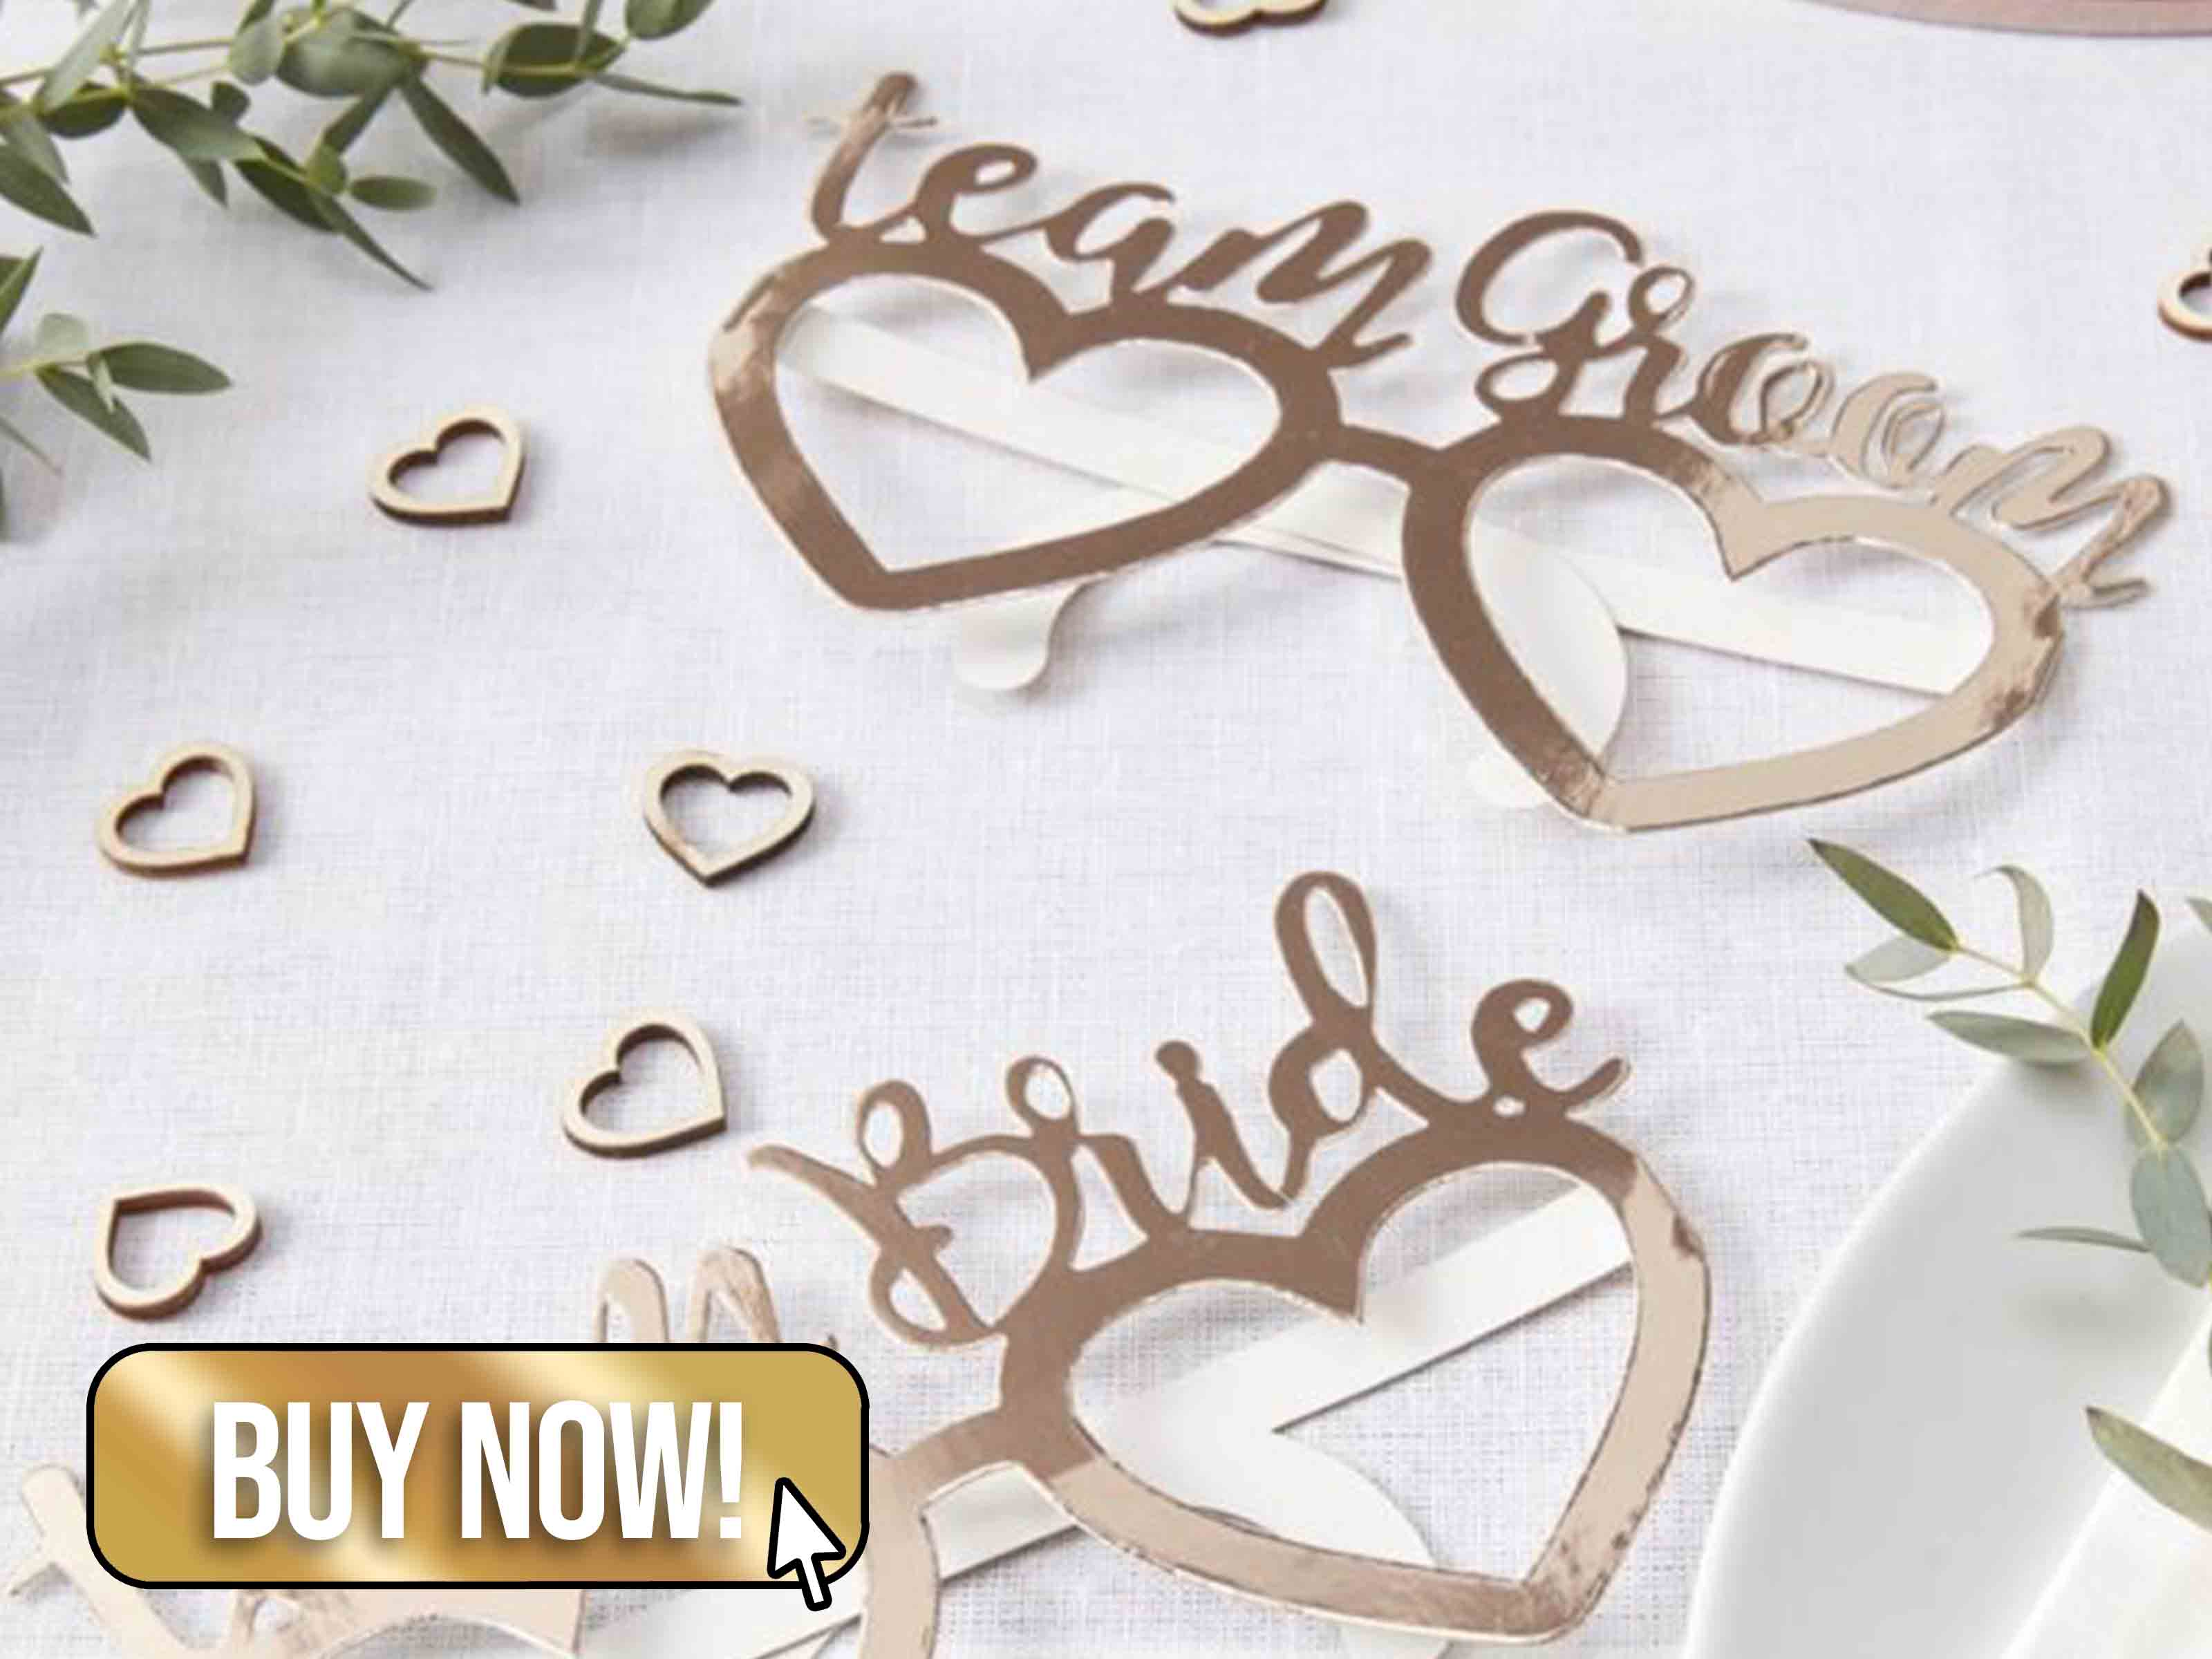 ROSE GOLD FOILED TEAM BRIDE TEAM GROOM FUN GLASSES - Ginger Ray